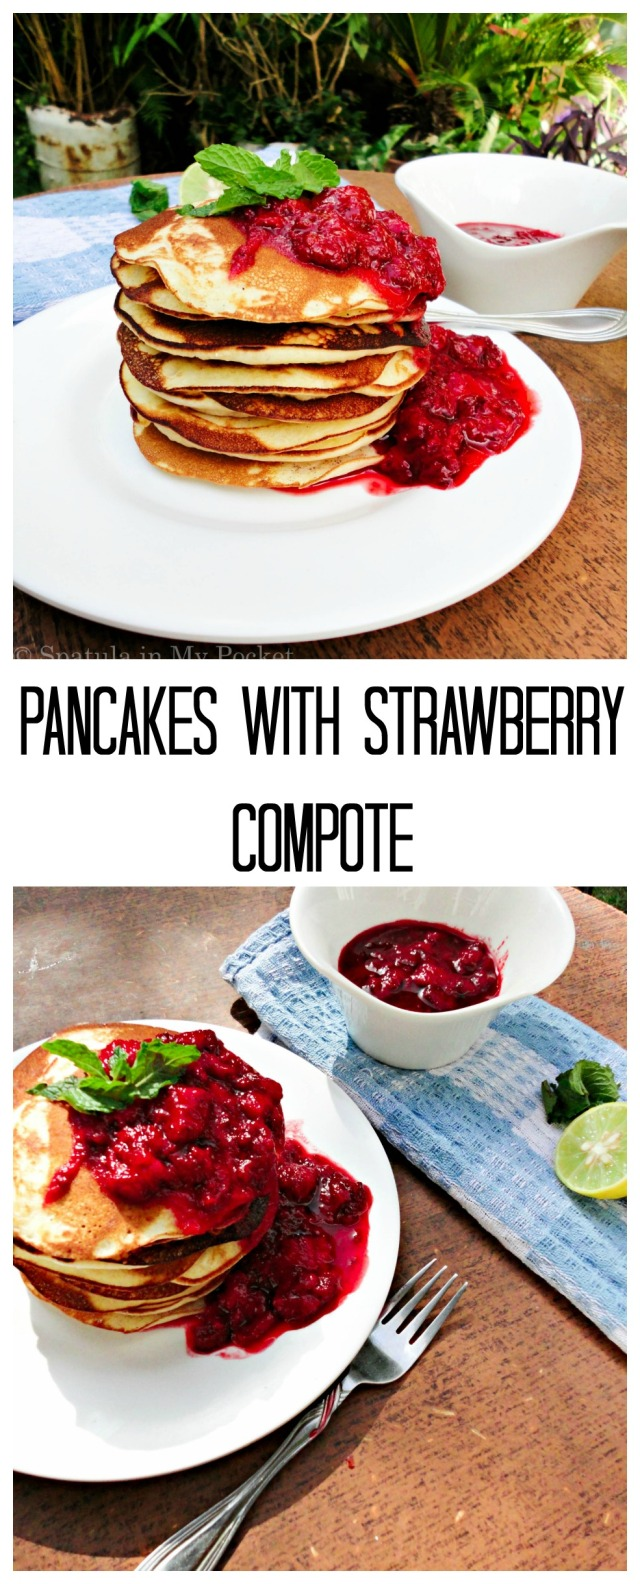 Make use of the fresh strawberries this spring to jazz up your pancakes. Leftover compote is delicious drizzled over ice cream.